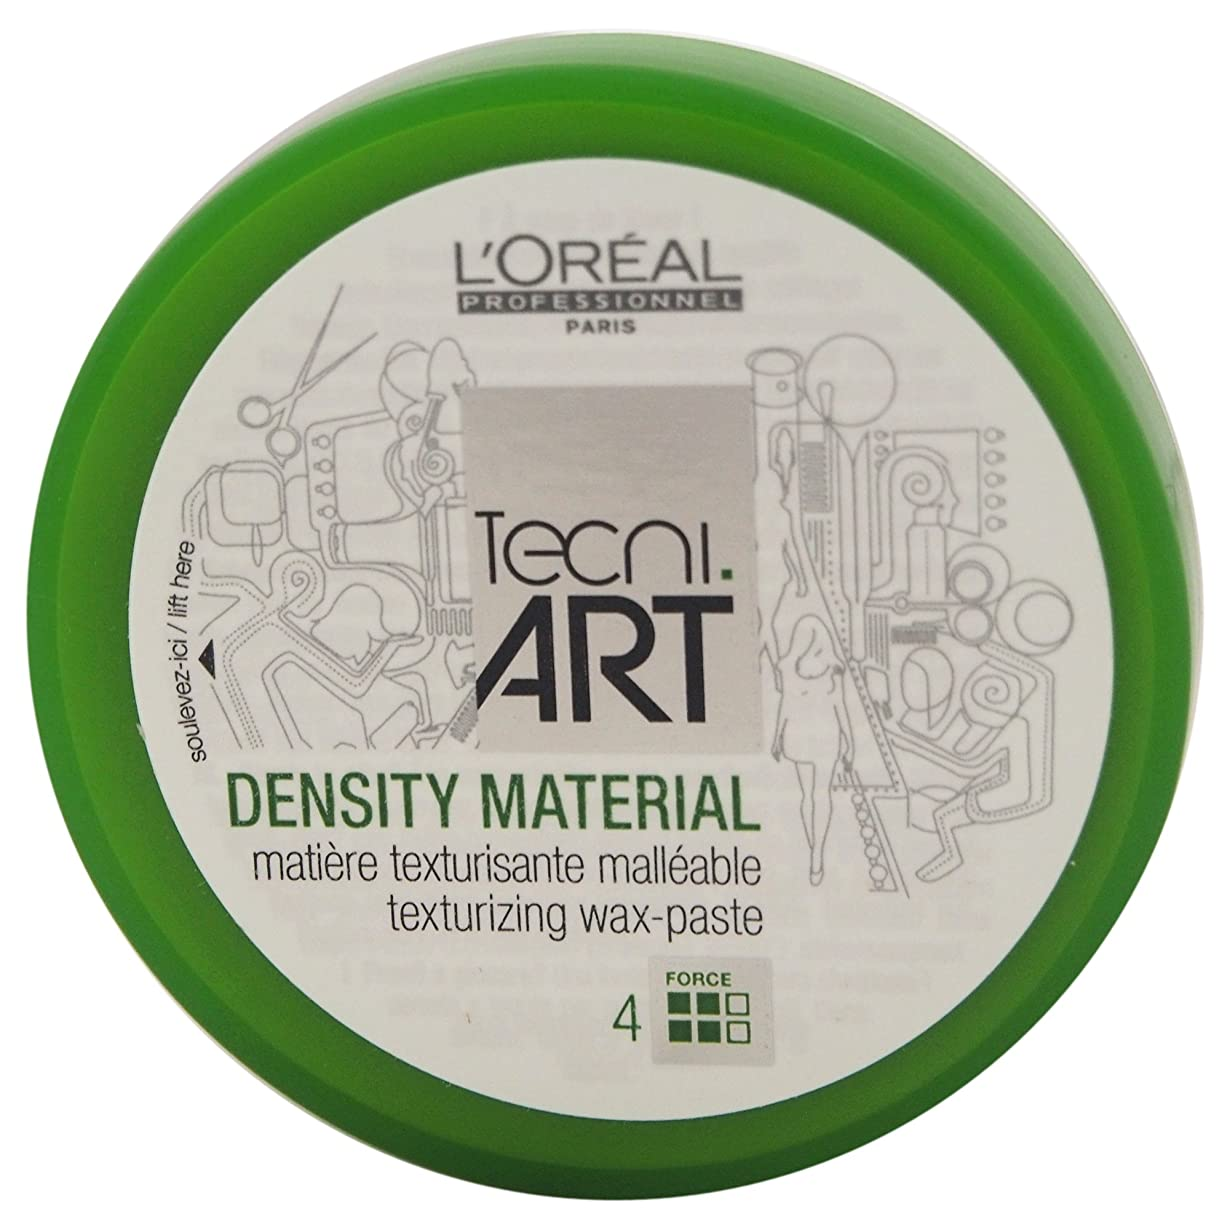 キャラバン帝国主義溢れんばかりのLoreal Tecni Art Density Material Force 4 Texturizing Wax Paste 100ml [並行輸入品]